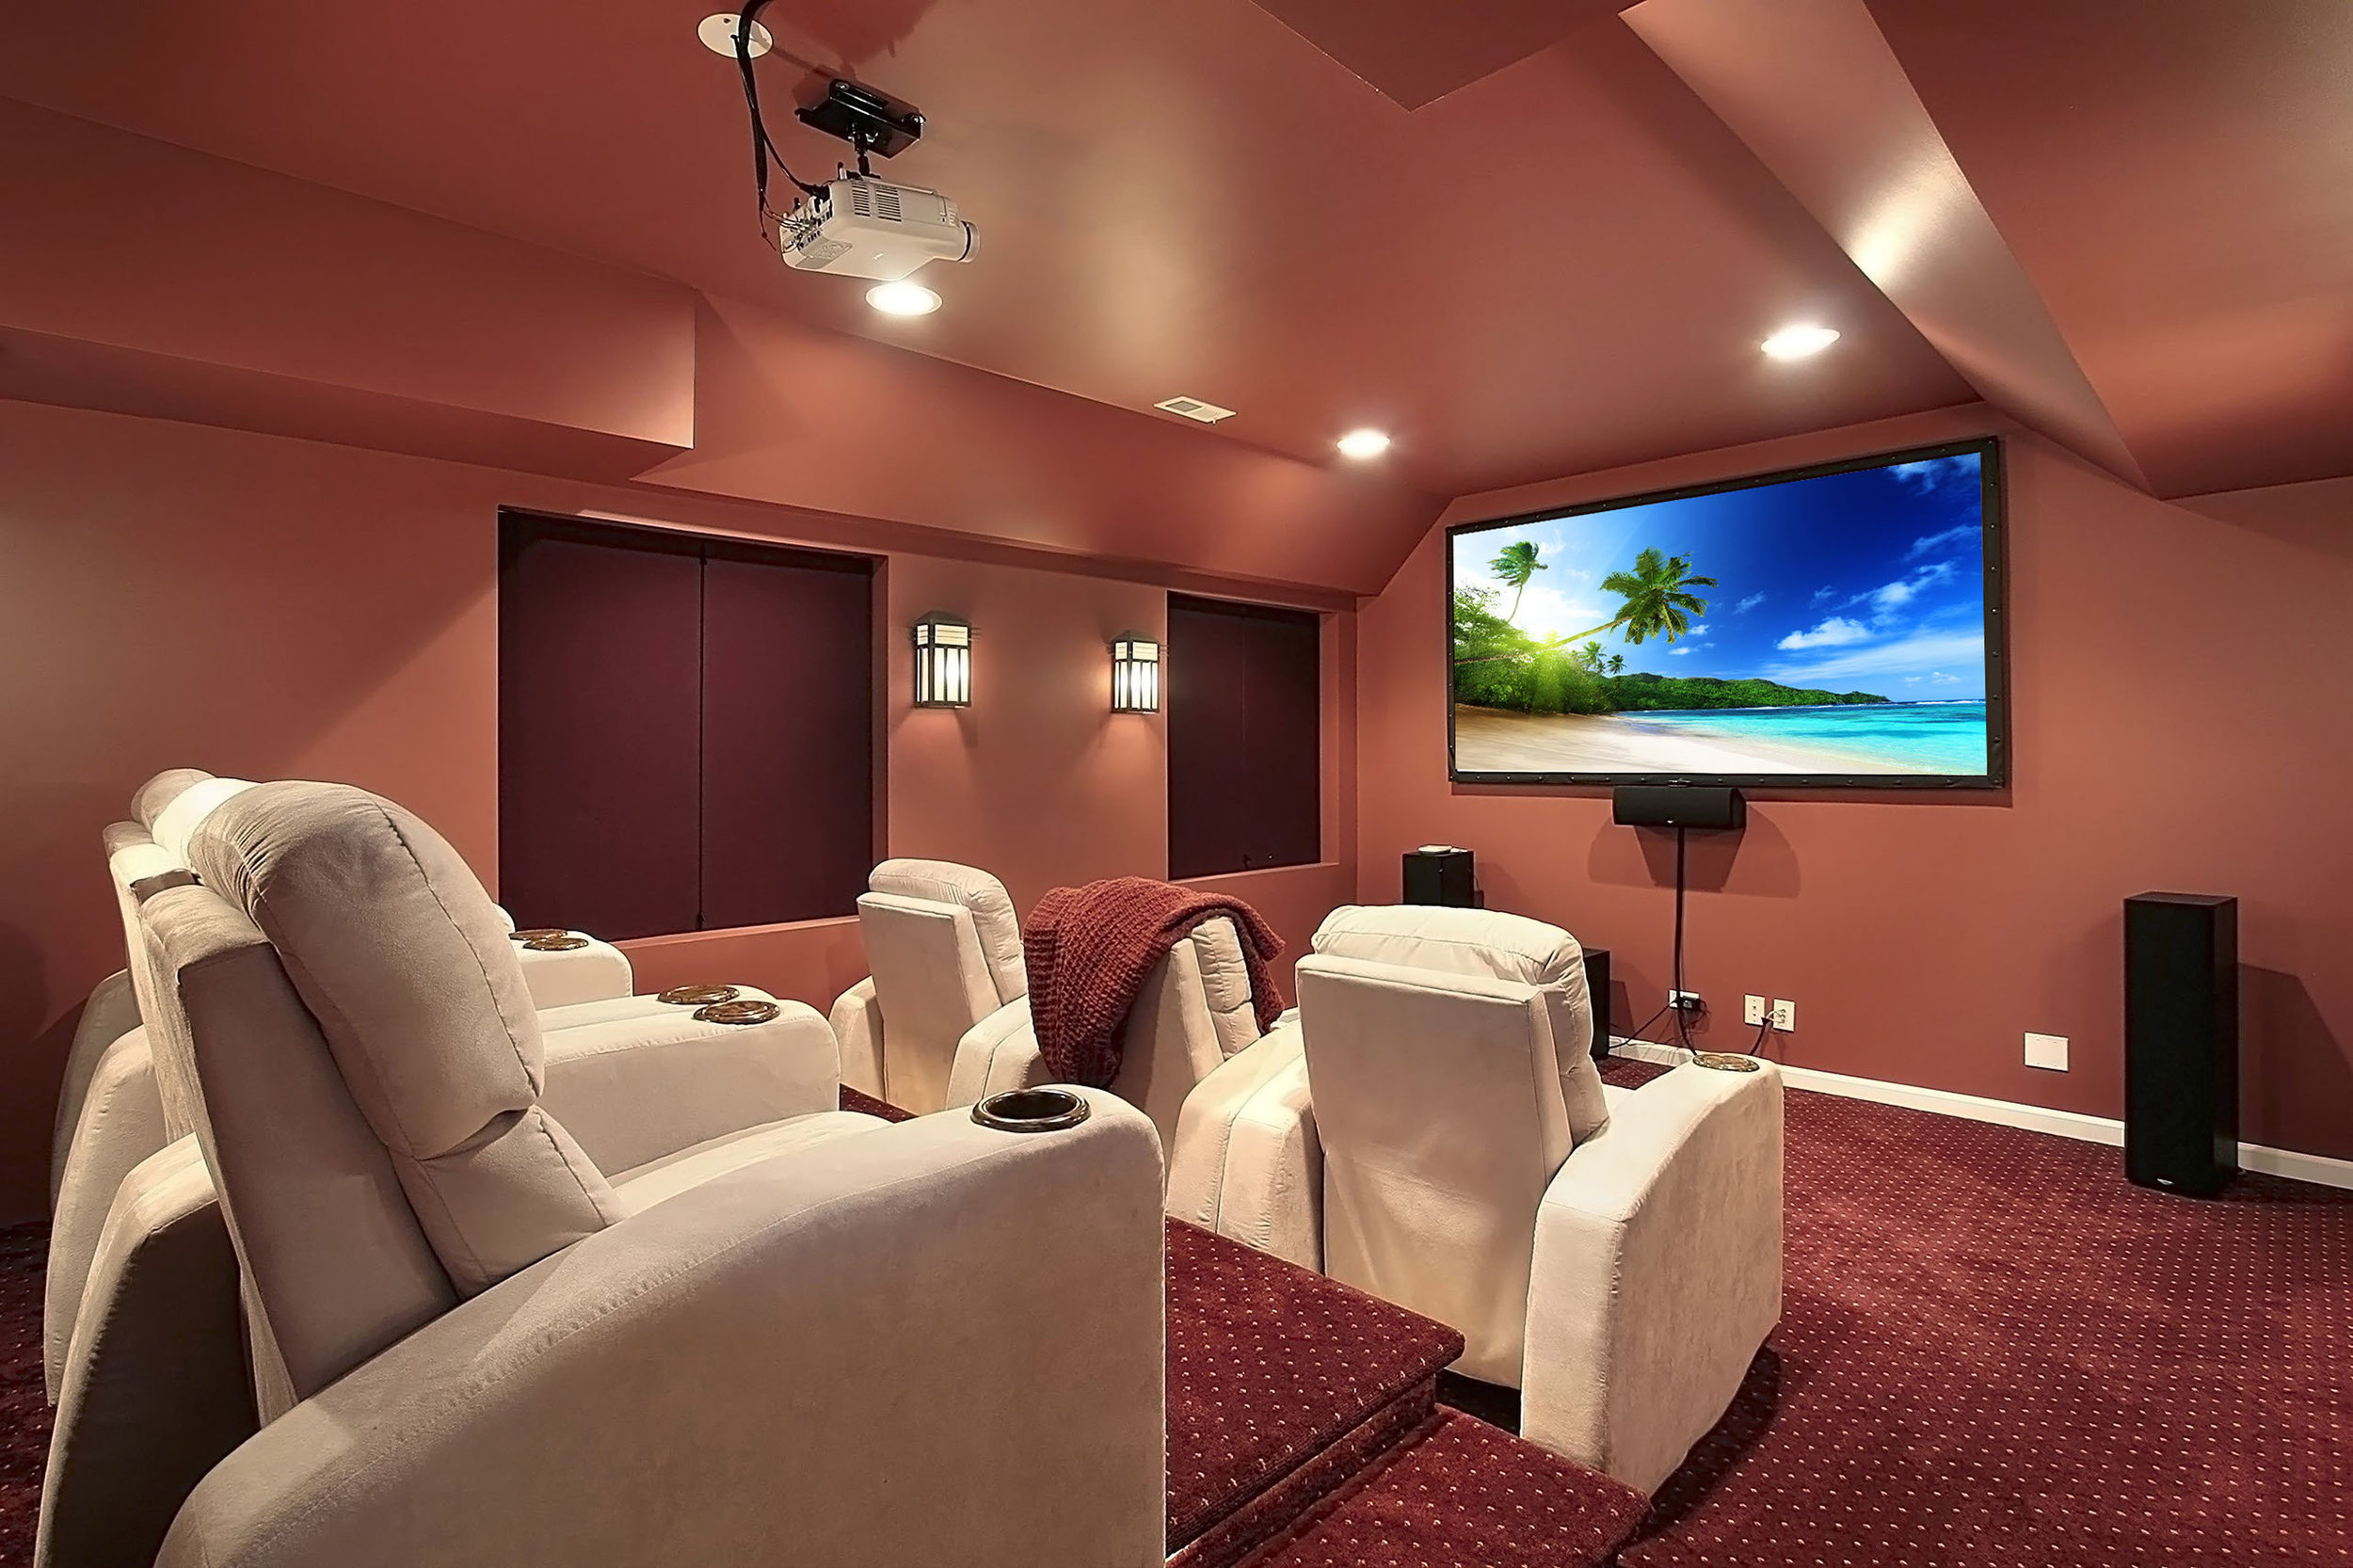 Floors - The best flooring for your home theater is wall to wall carpet, as it absorbs ambient sound! Consider adding a cushy pad underneath.